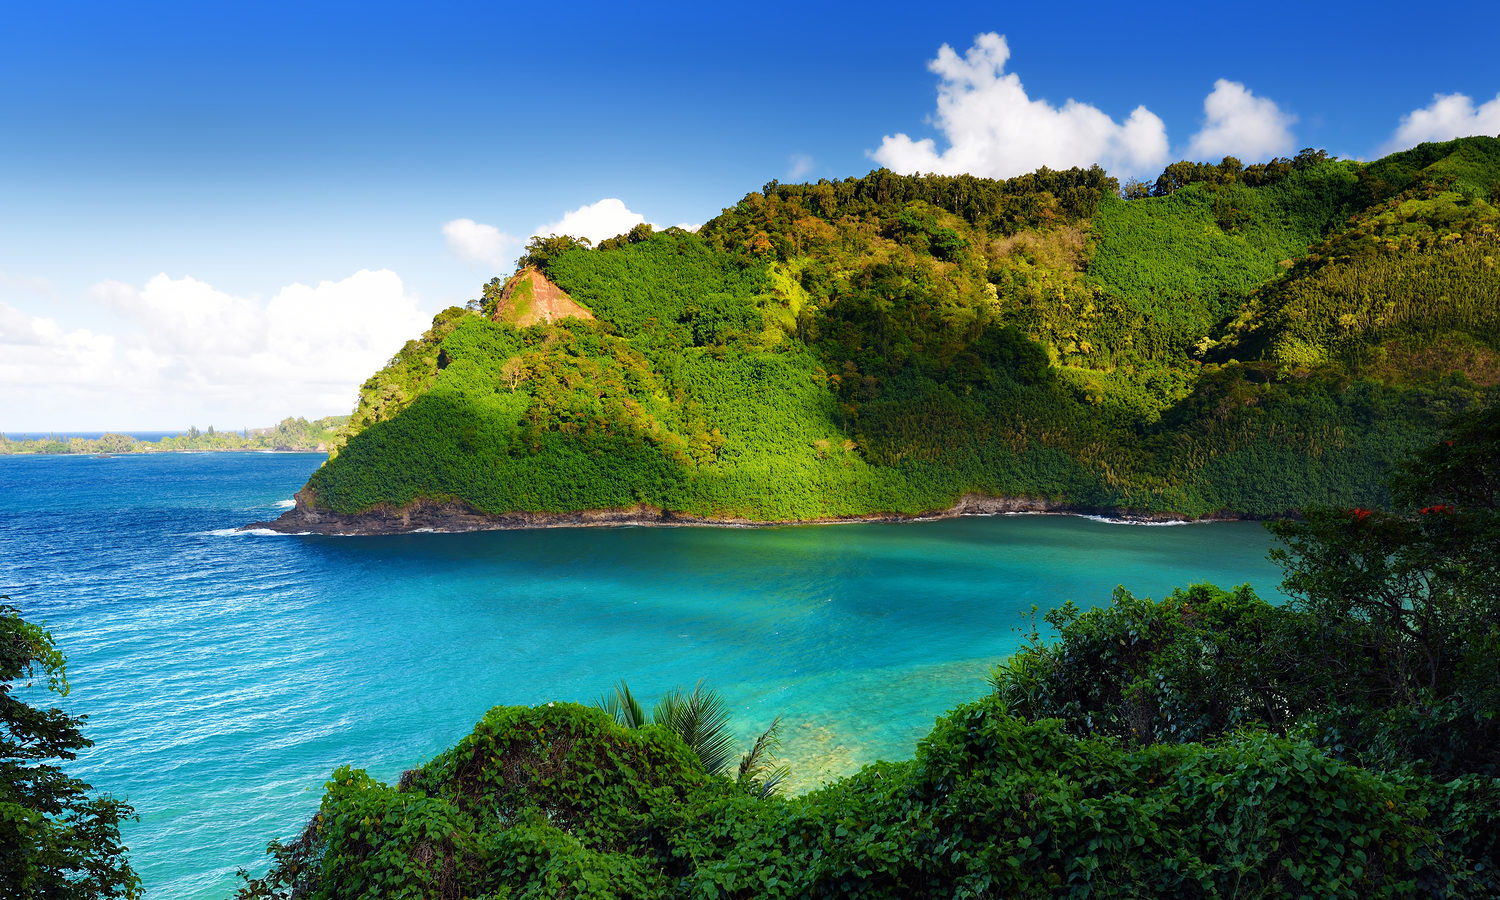 11Beautiful Views Of Maui North Coast Seen From Famous Winding Road To Hana with GyPSy Guide